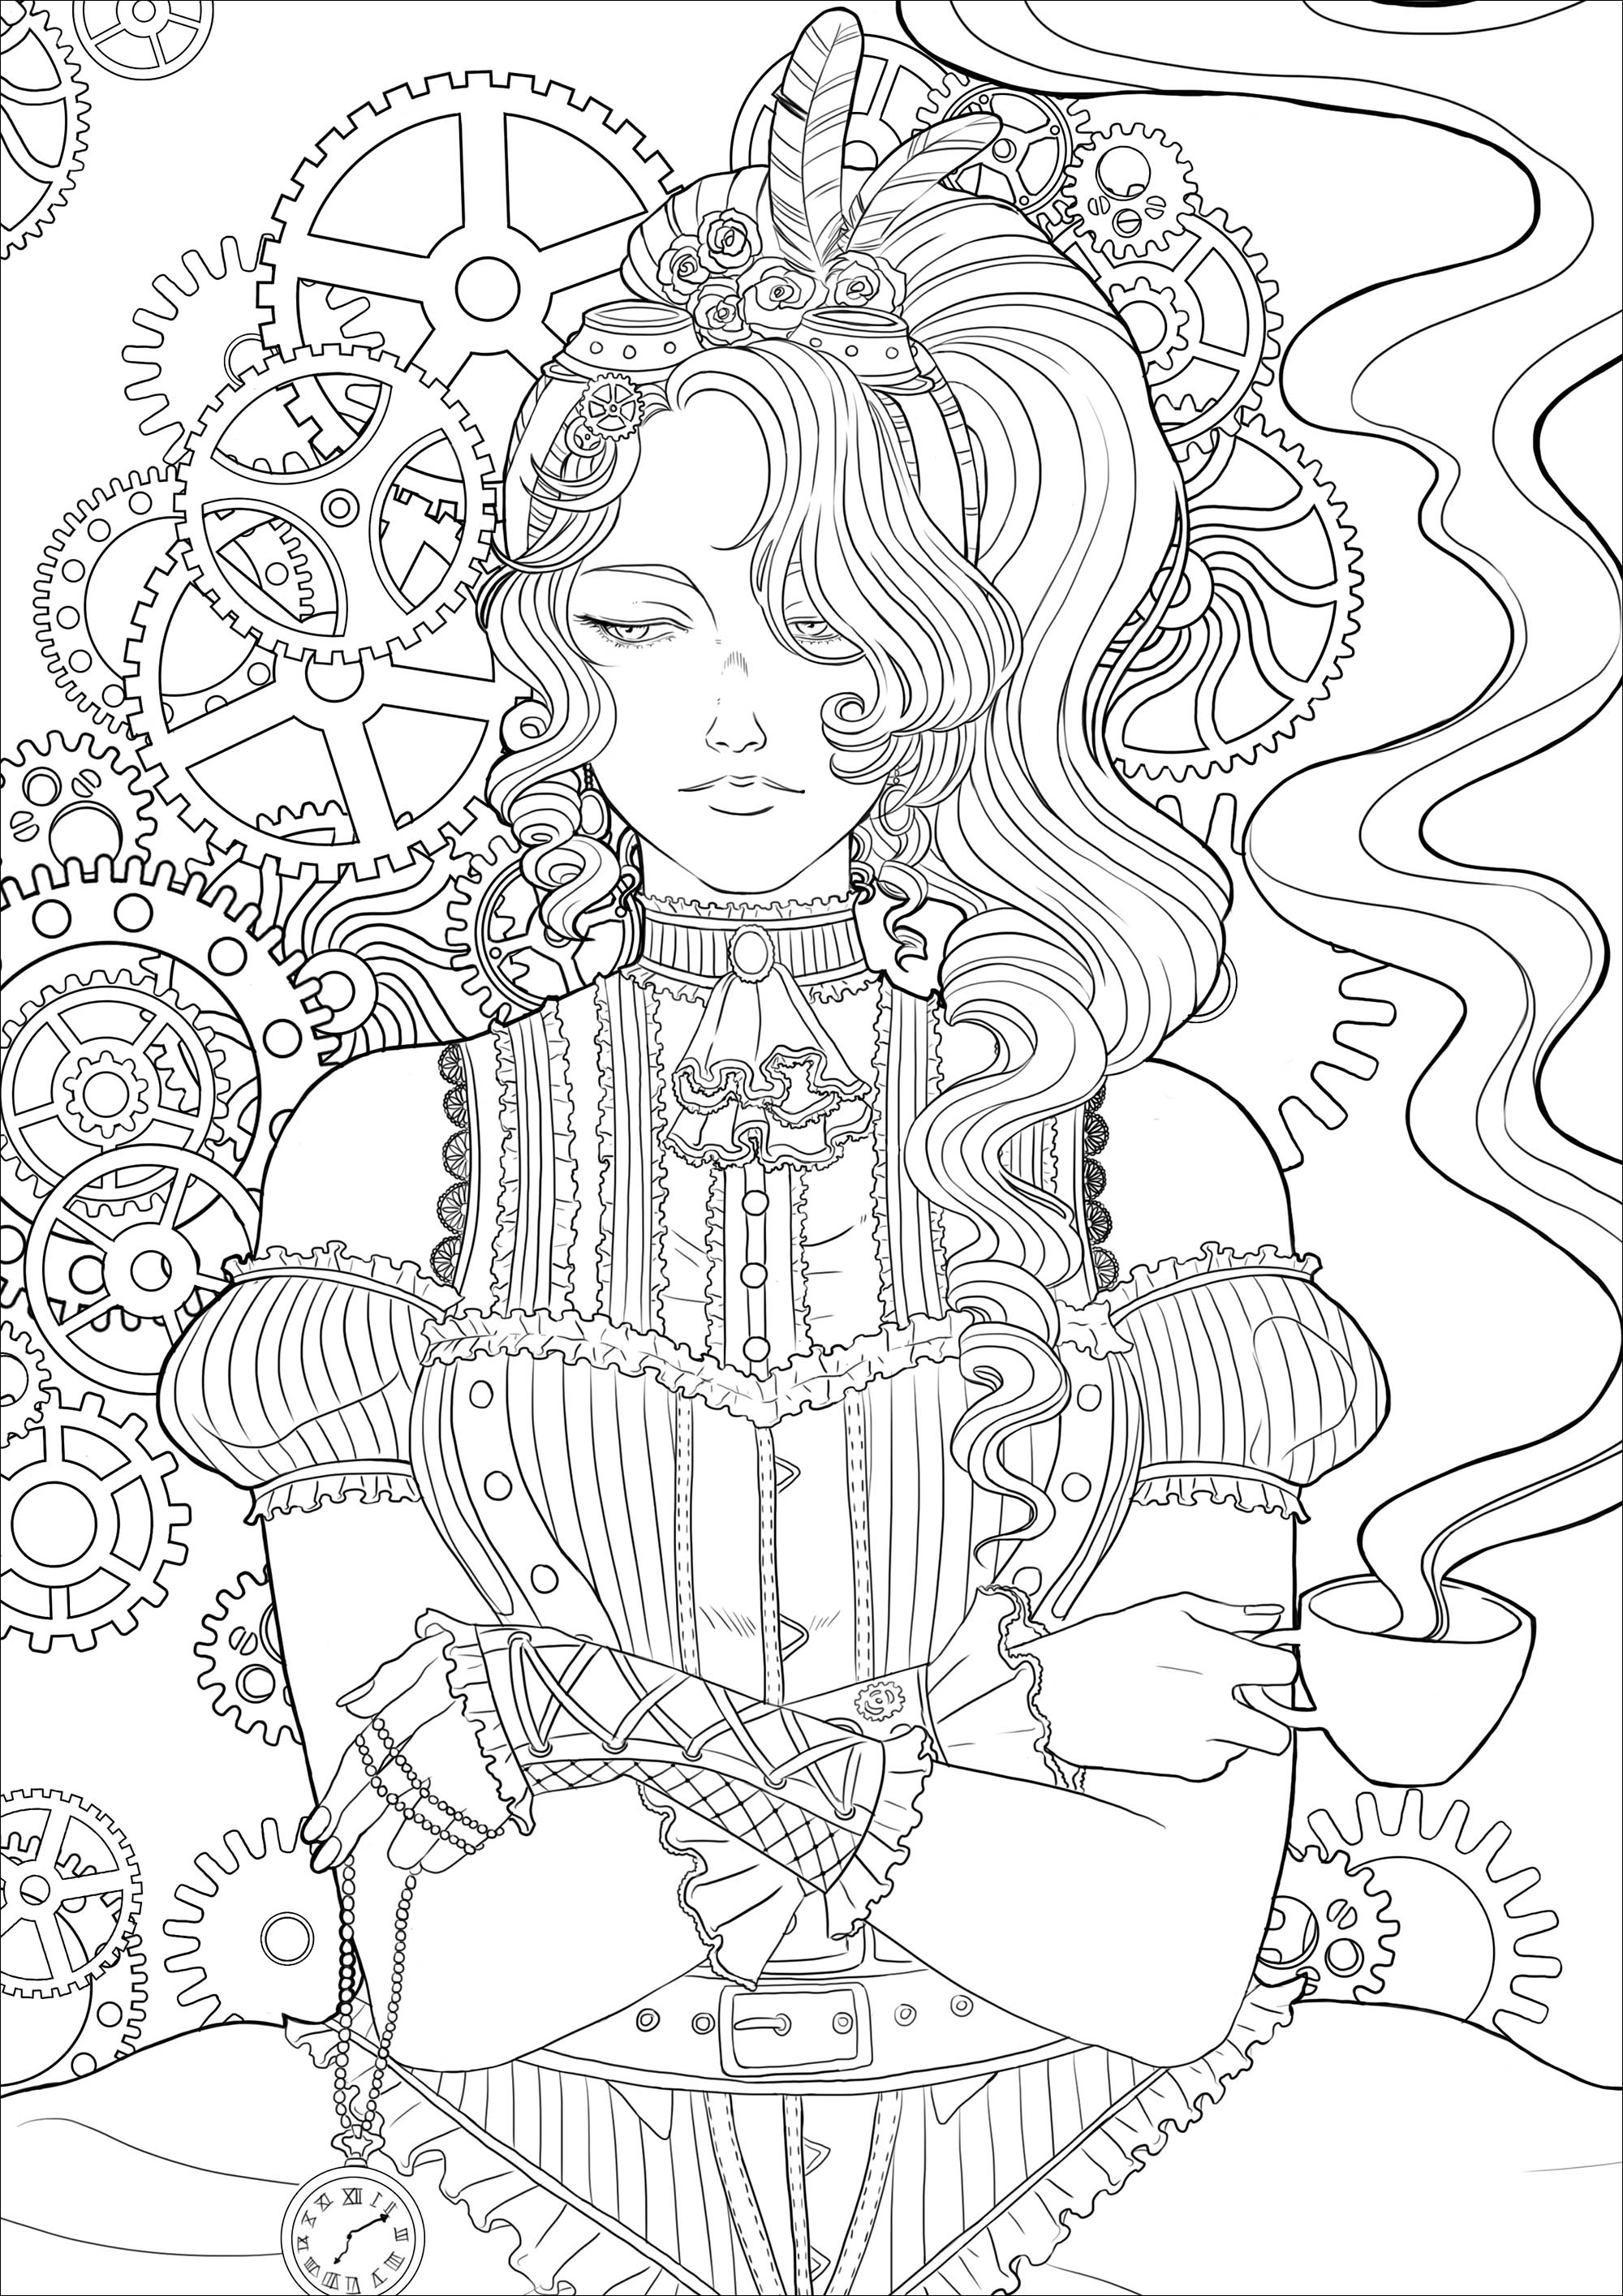 Coloring page of a melancholy young woman with a cup of tea, all in a Victorian environment and mechanisms. Version 2